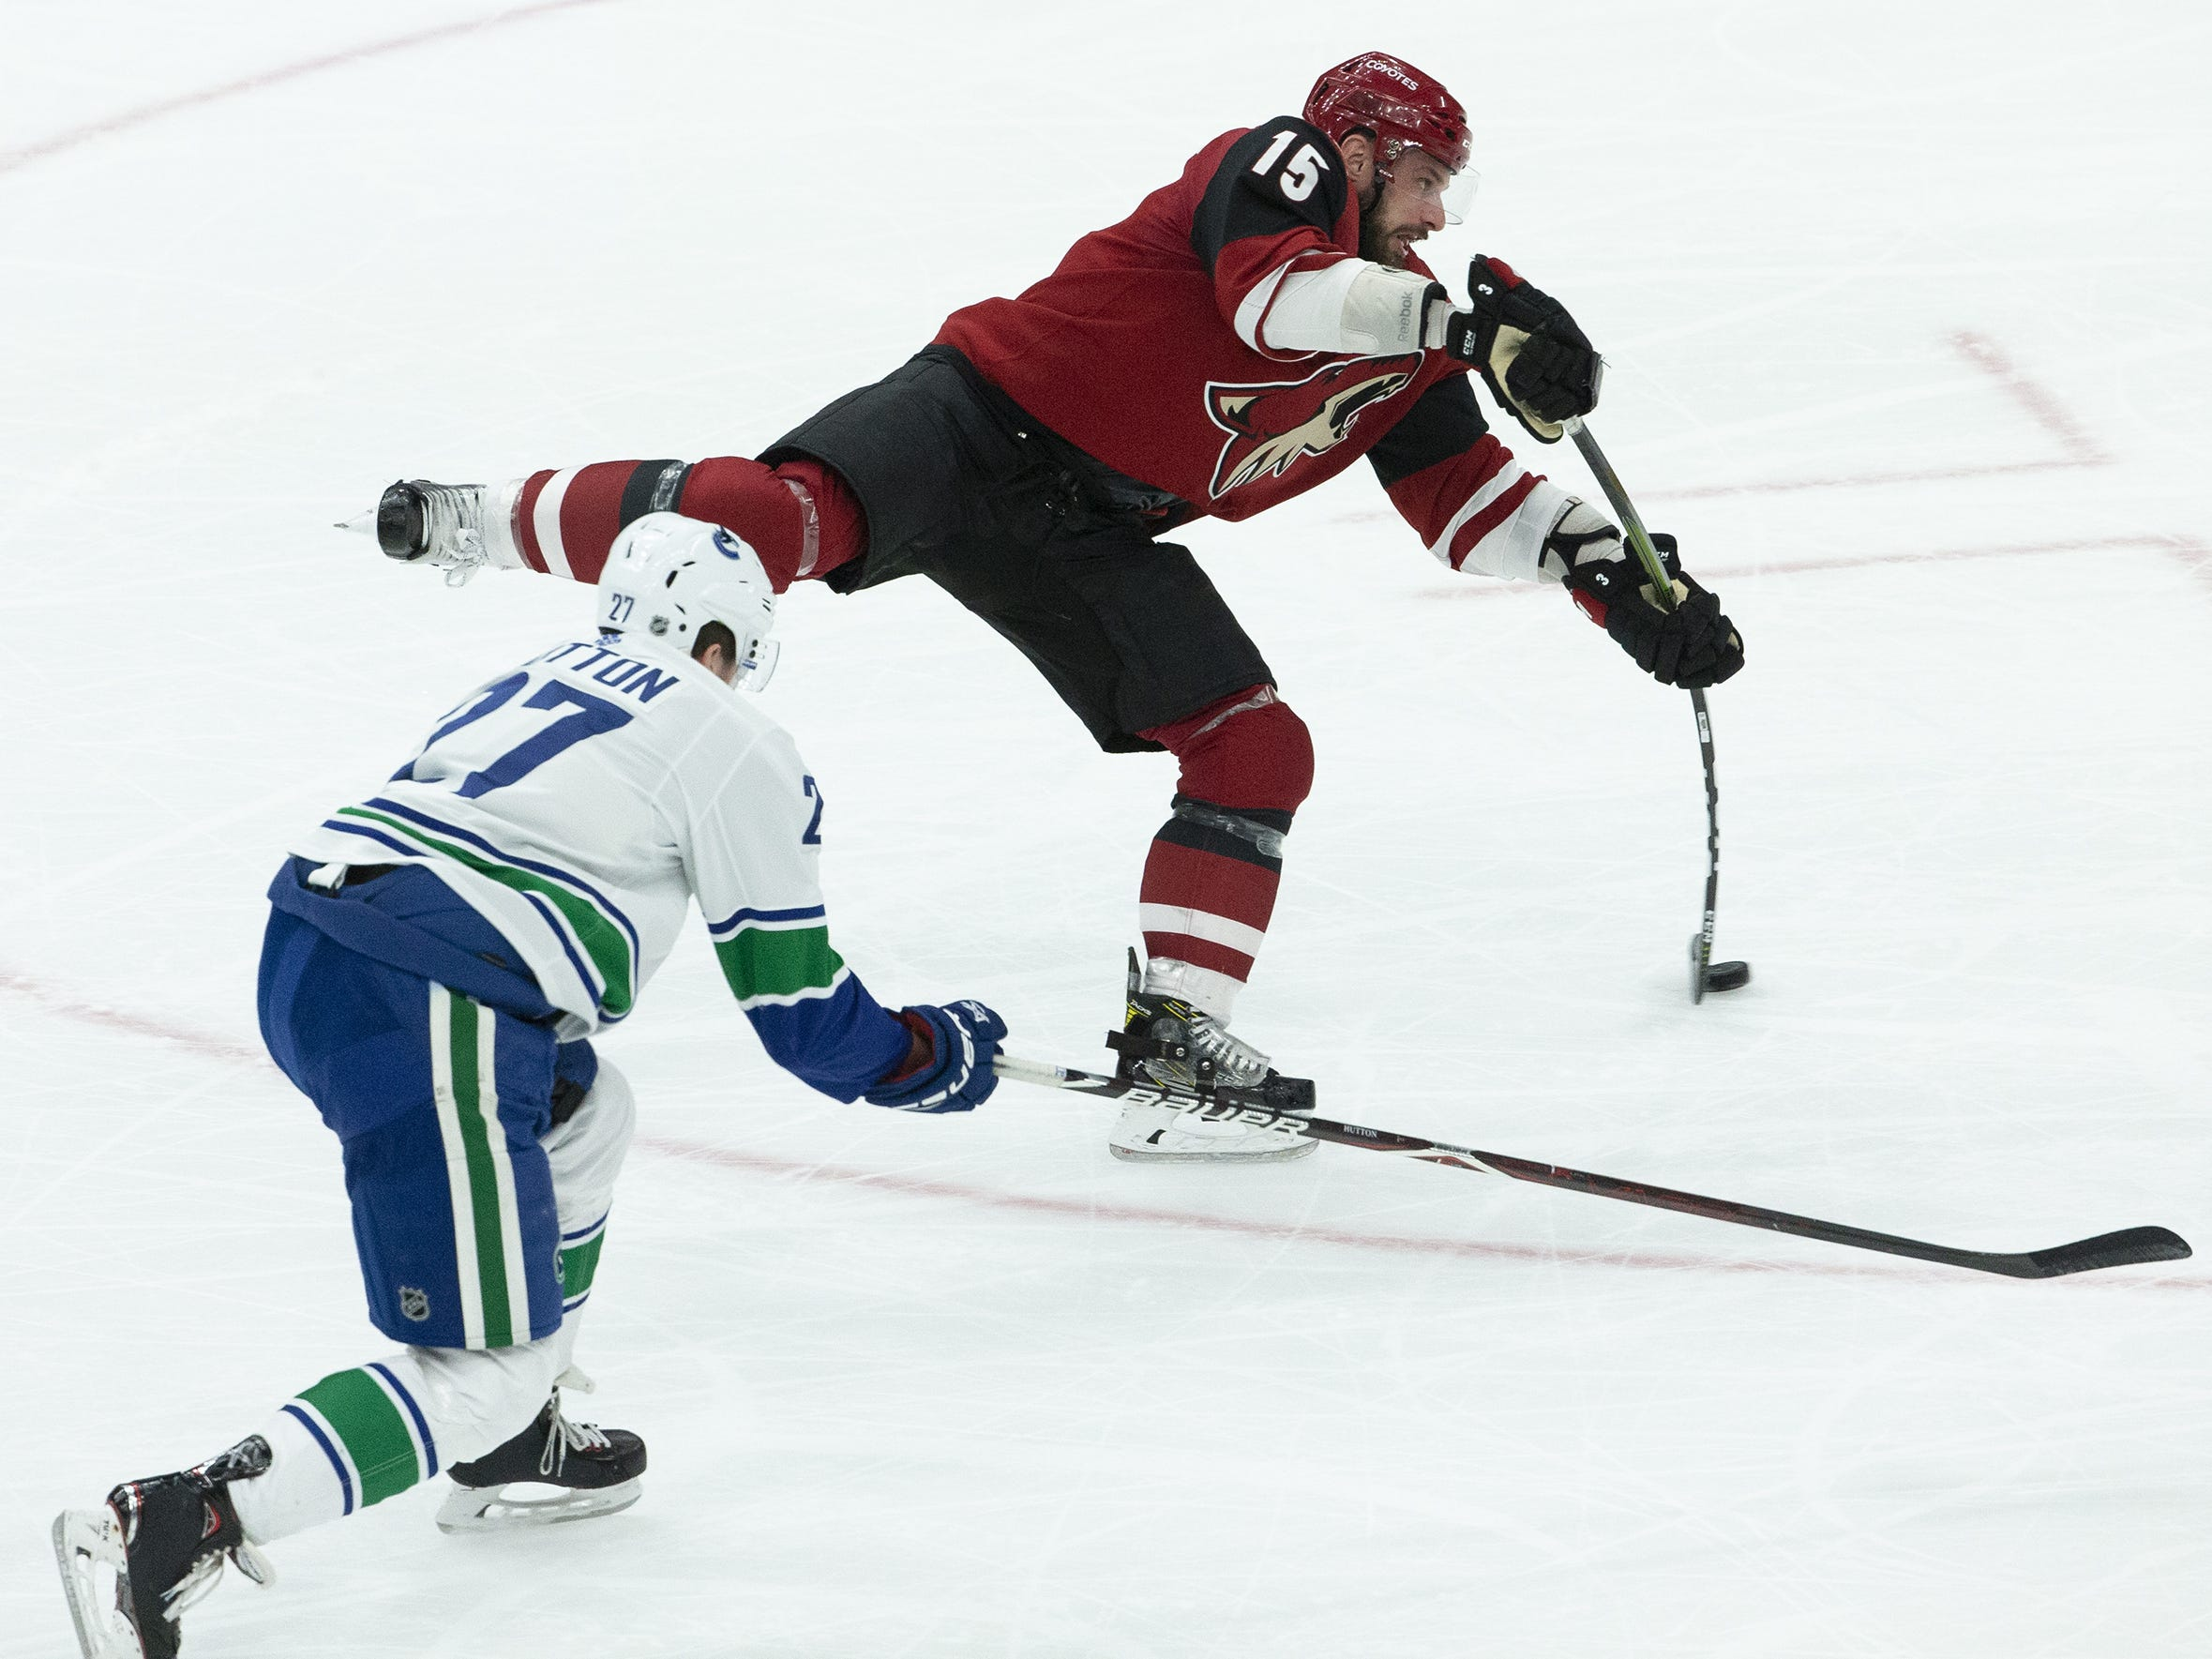 Arizona Coyotes center Brad Richardson (15) shoots for a goal while being defended by Vancouver Canucks defenseman Ben Hutton (27) during a NHL game at Gila River Arena in Glendale on February 28.